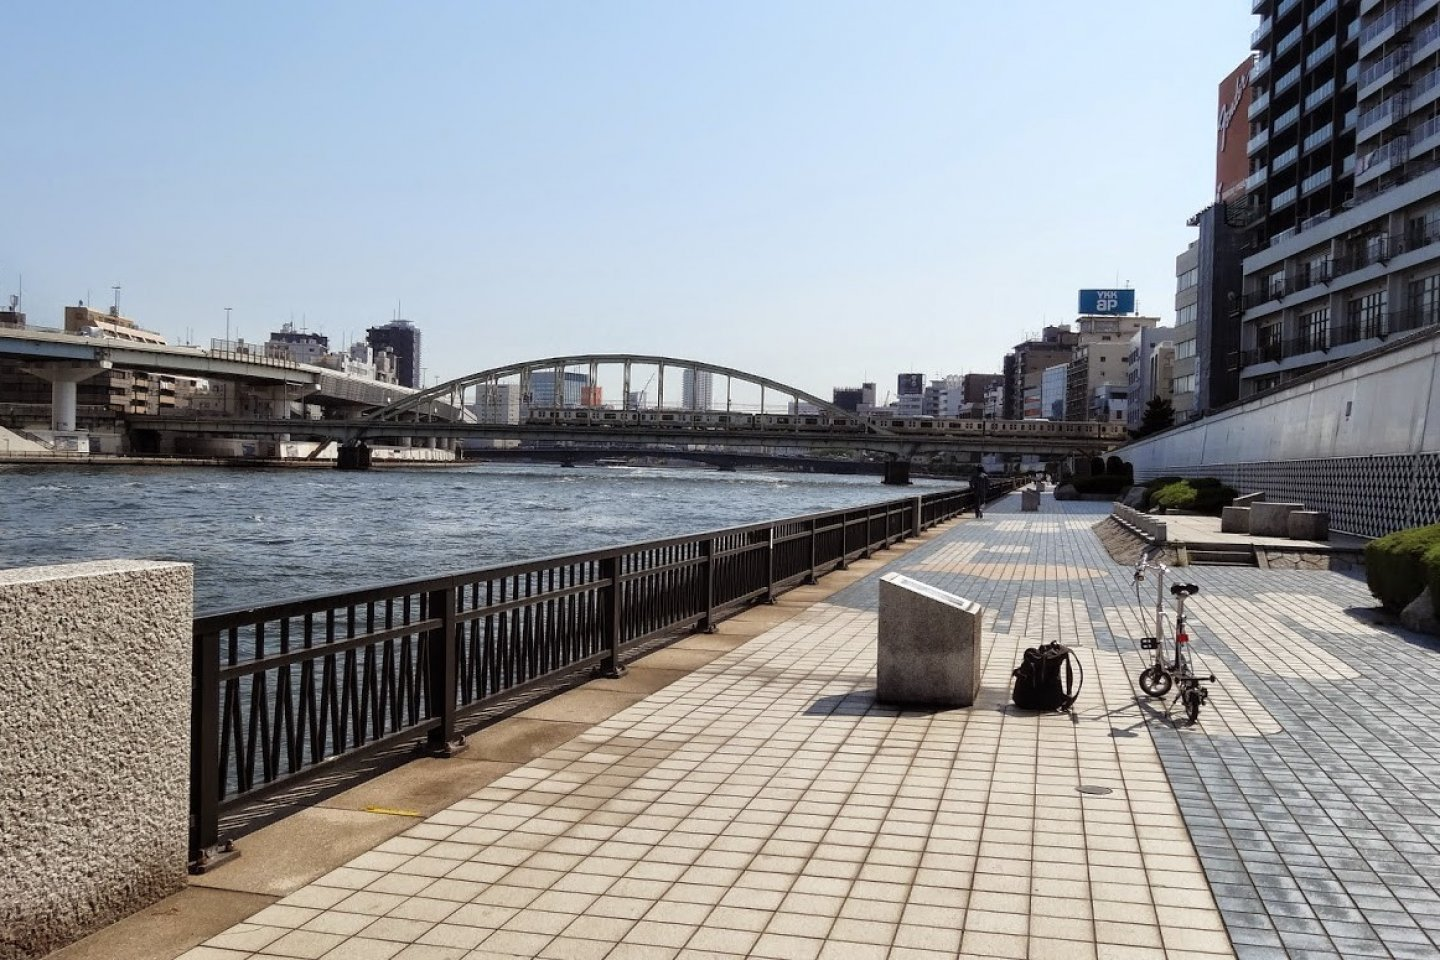 The Sumidagawa Terrace with displays of famous Japanese prints